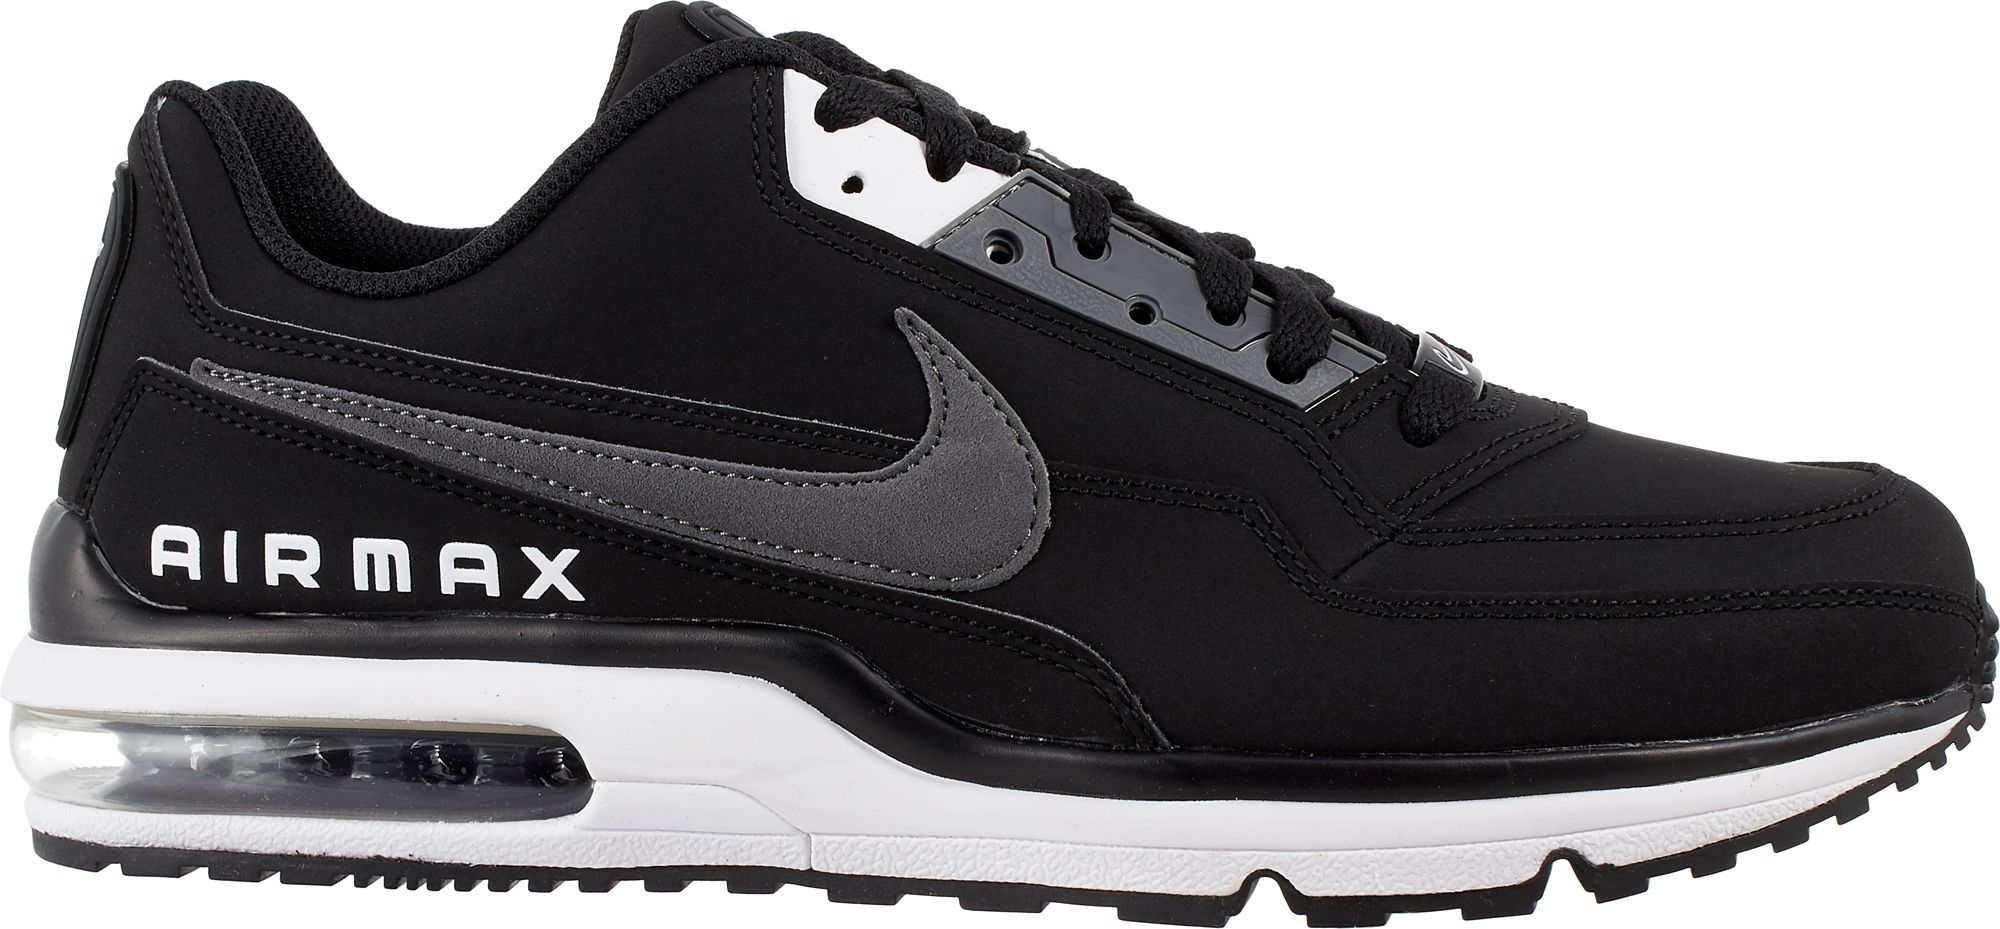 nike air max ltd 3 on sale